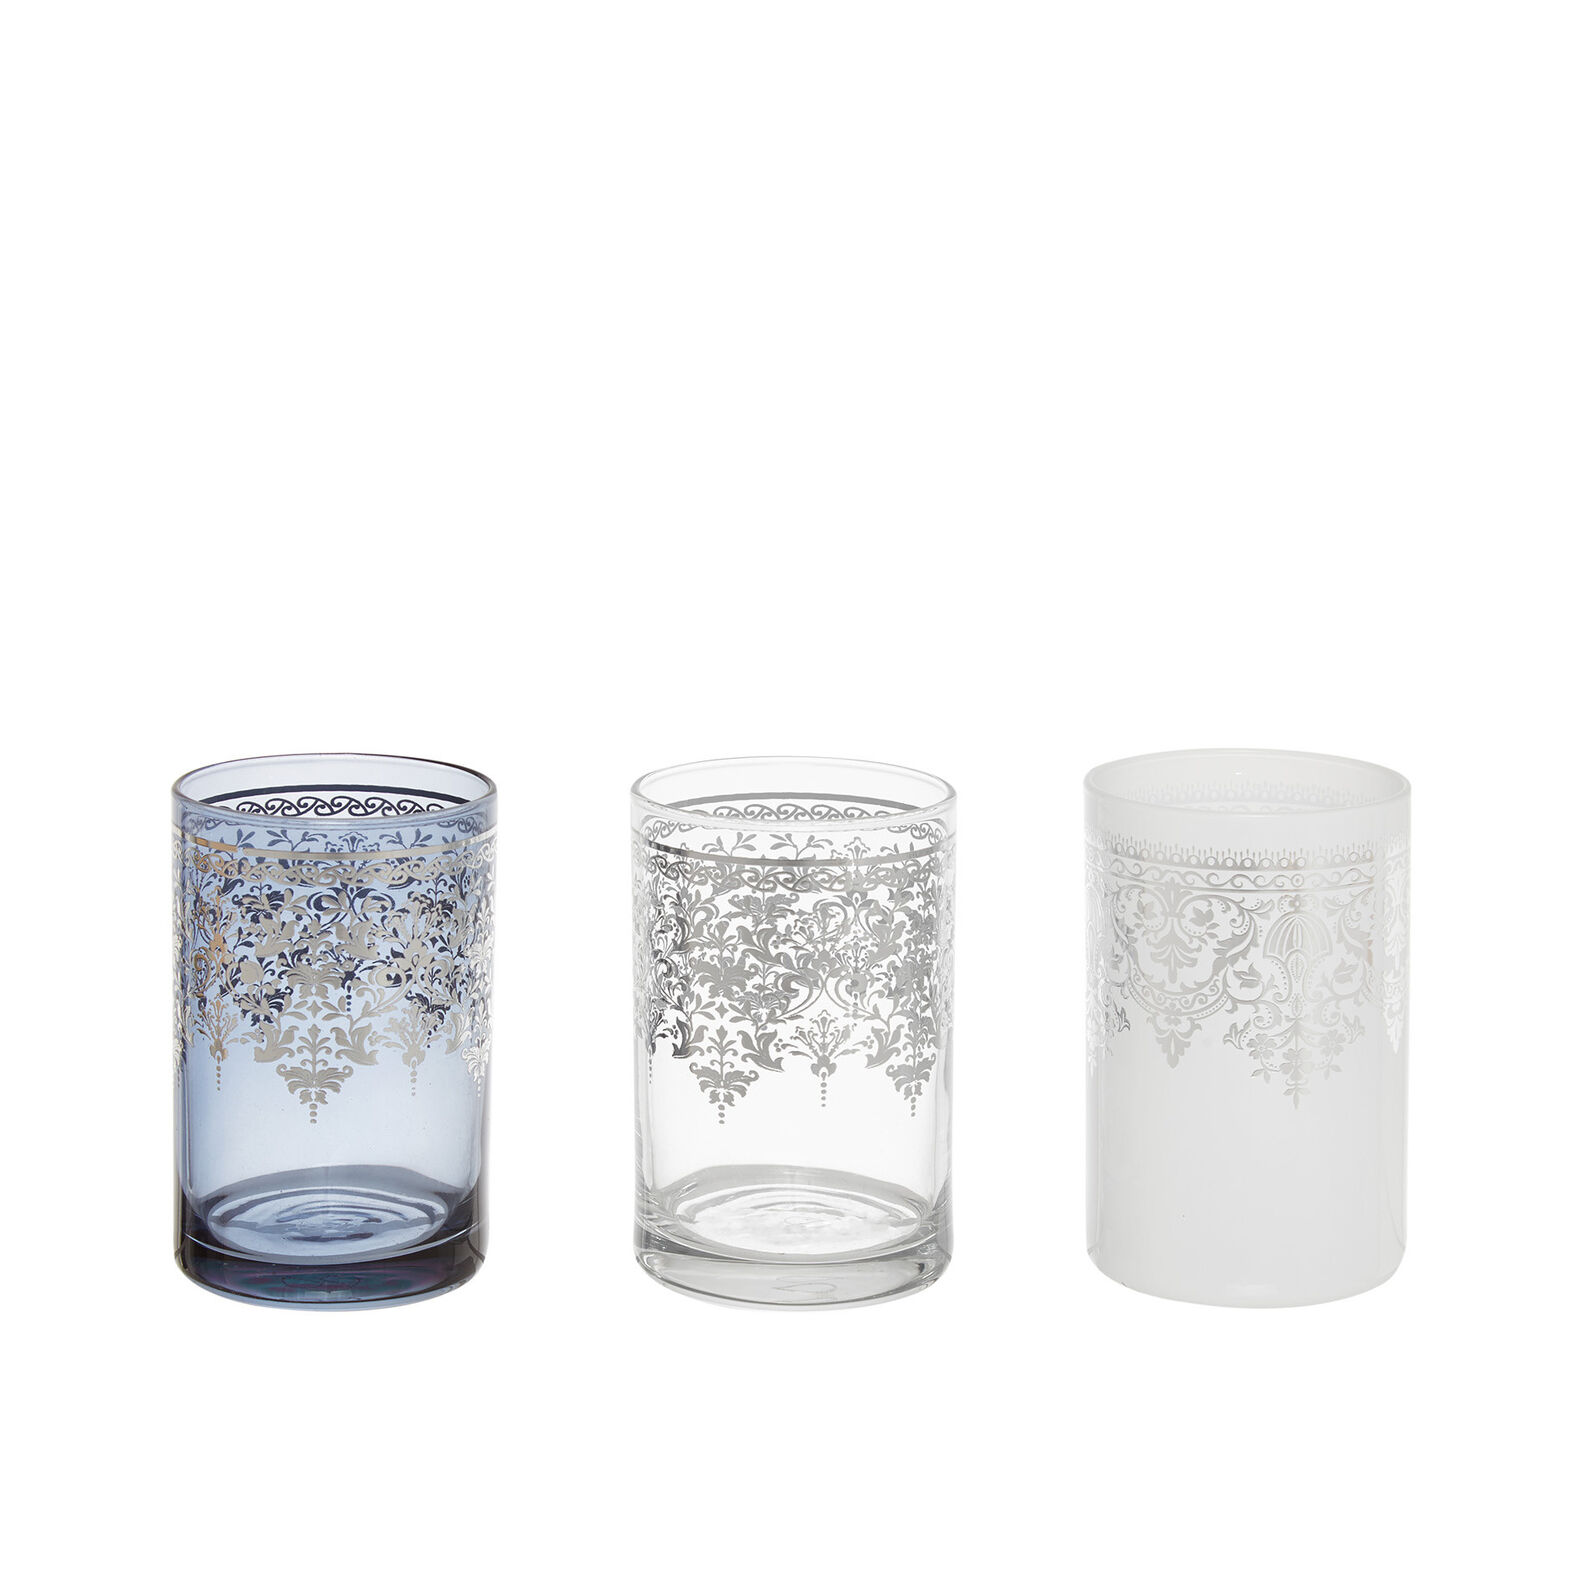 Tea cups in Moroccan-style glass